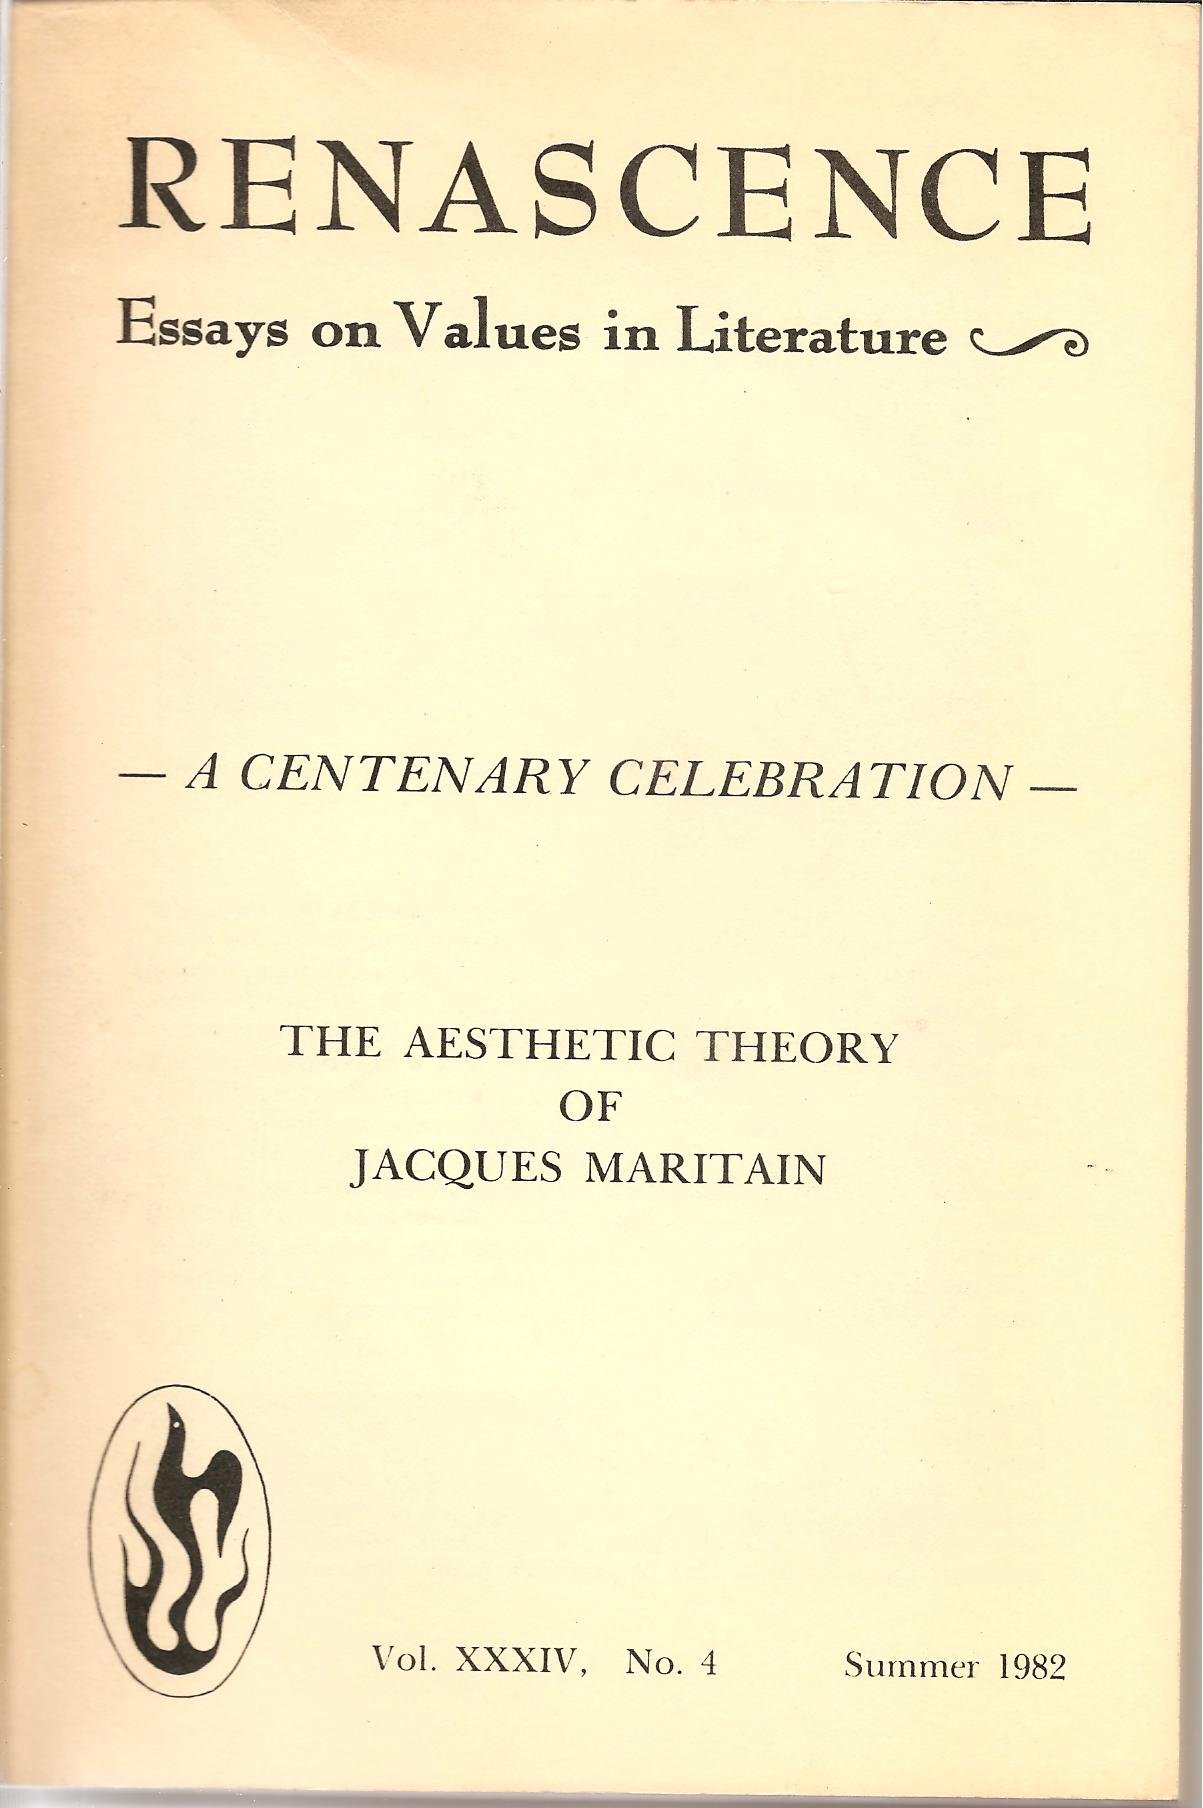 Renascence Essays On Values In Literature The Aesthetic Theory Of  Renascence Essays On Values In Literature The Aesthetic Theory Of Jacques  Maritain A Centenary Celebration Nine Essays On Maritain Vol Xxxiv No Example Of Thesis Statement For Argumentative Essay also Essay In English Language  Nursing Assignment Help Australia